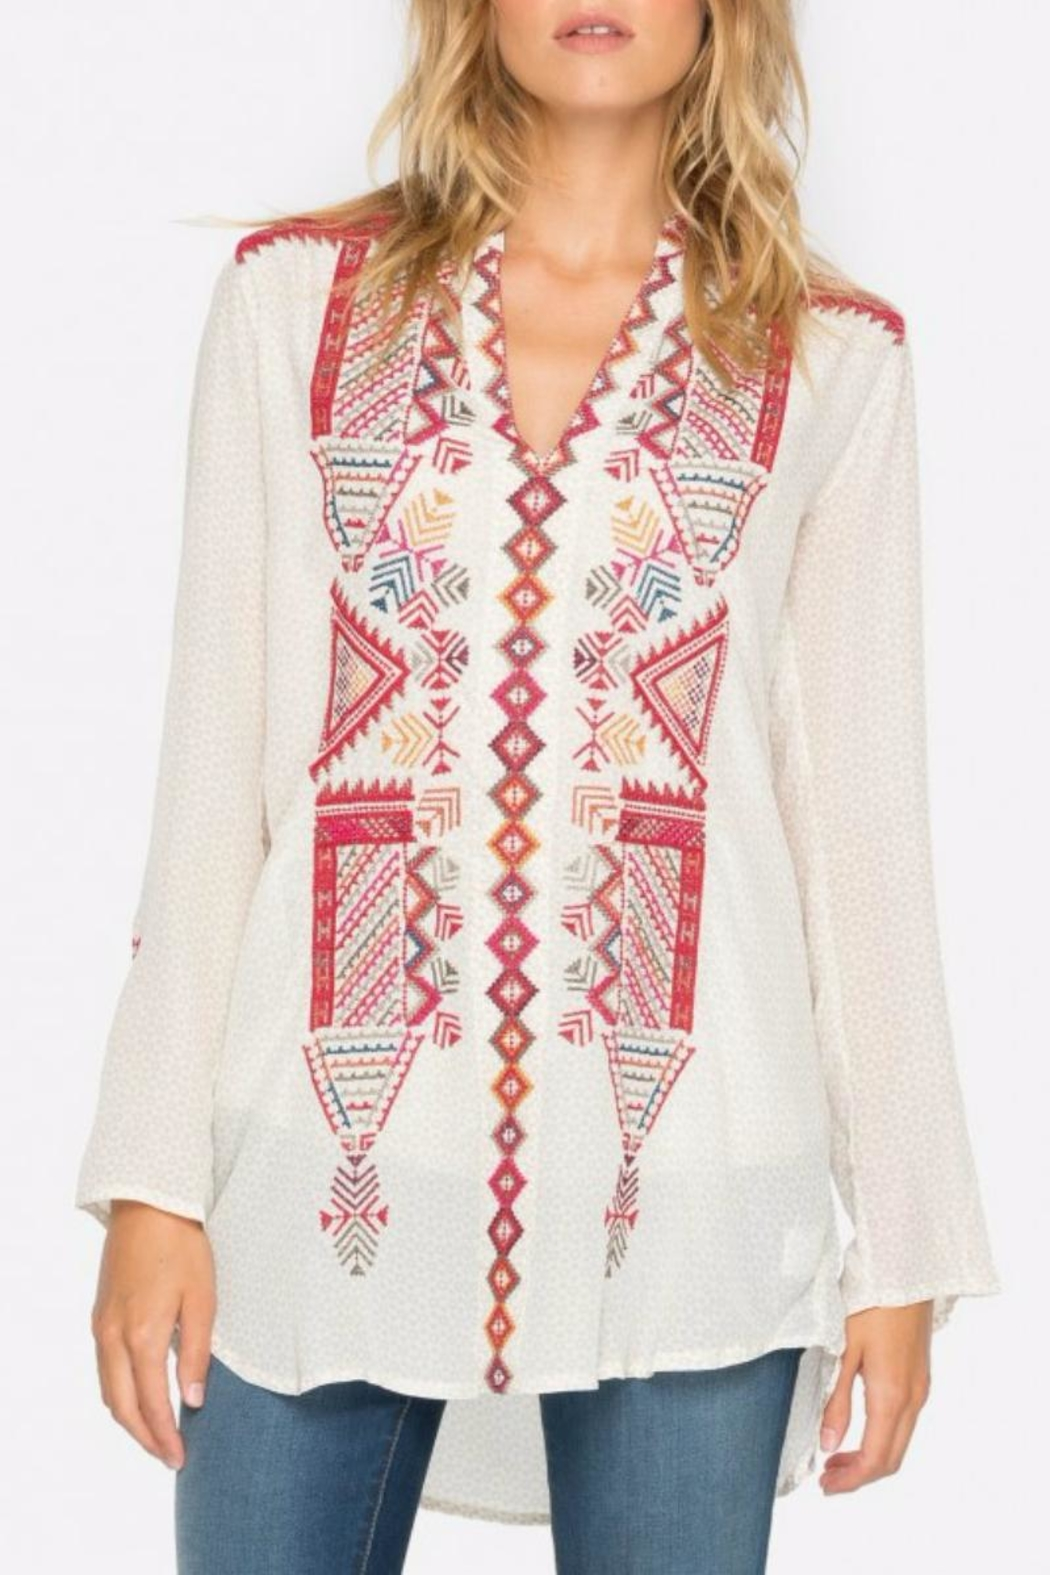 Biya by Johnny Was Embroidered Silk TunicTop - Main Image